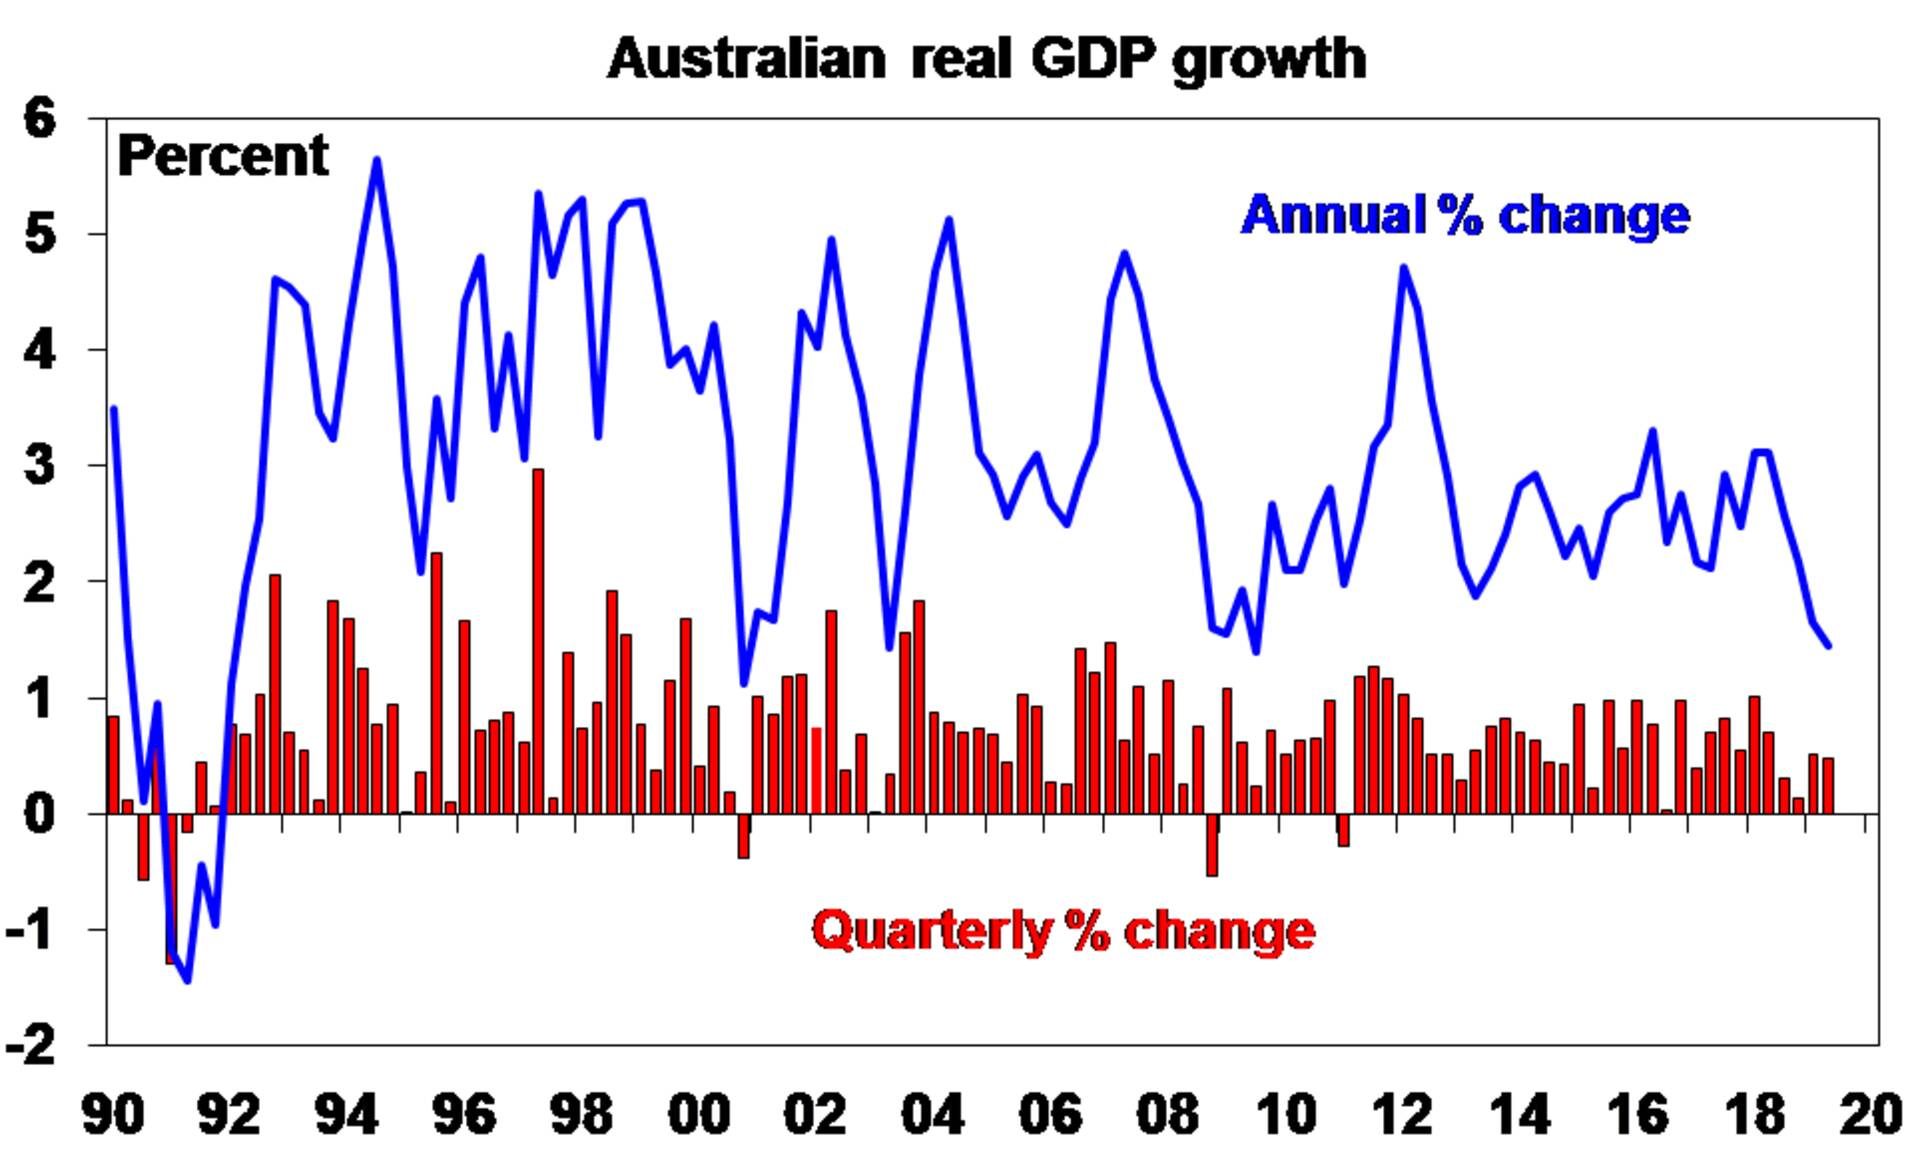 Graph: Australian real GDP growth